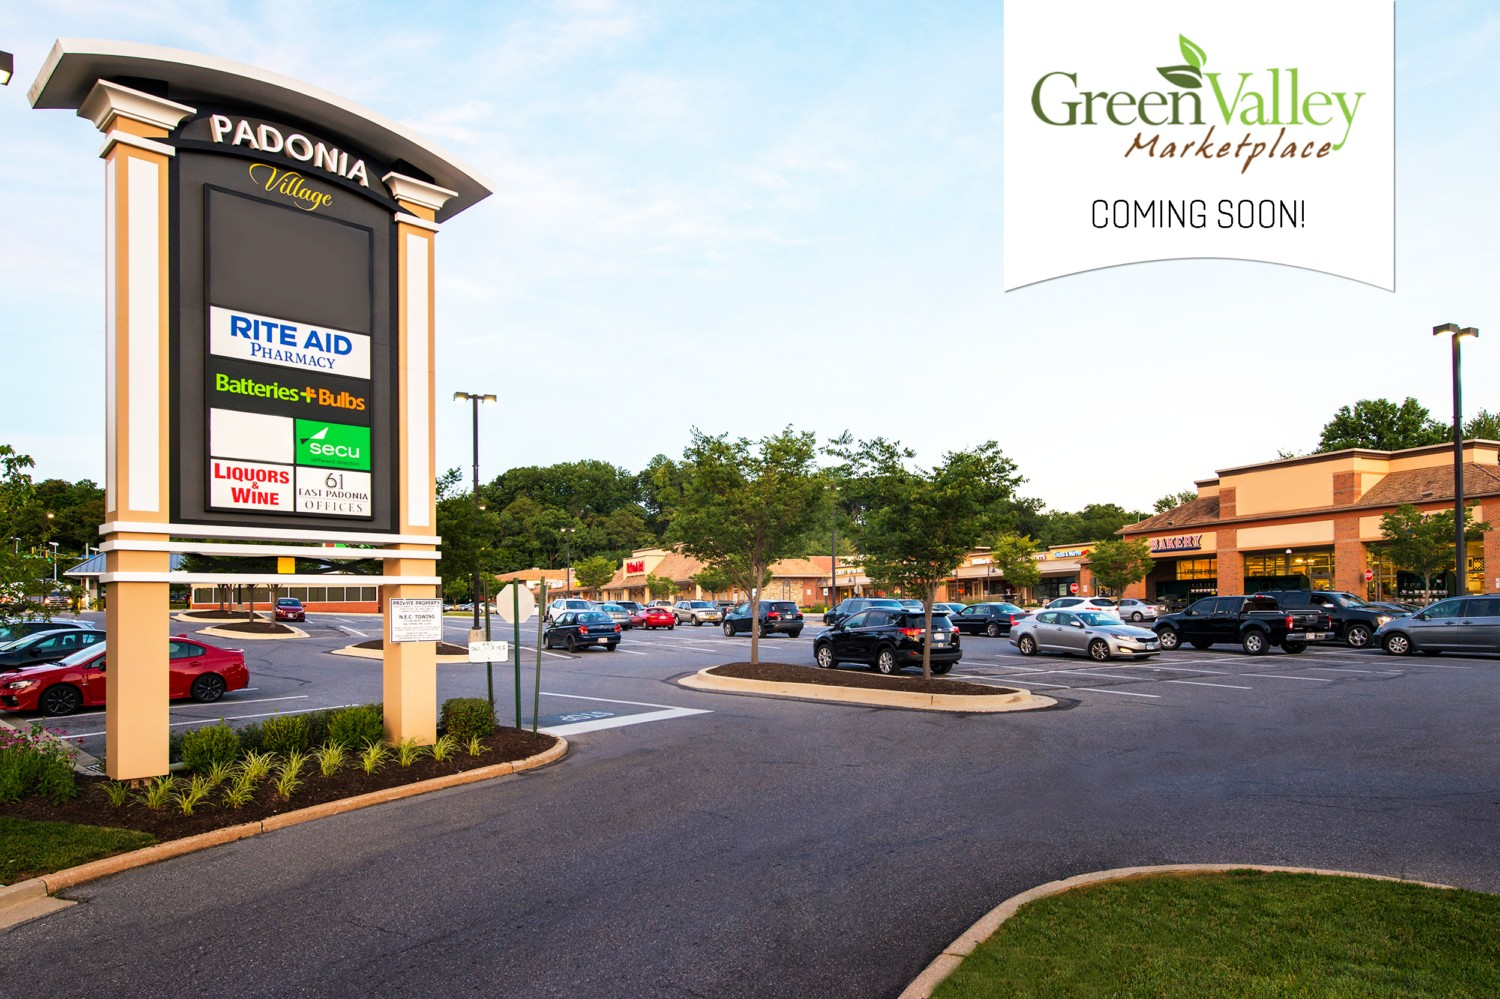 Green Valley Marketplace Selects Padonia Village as Site for